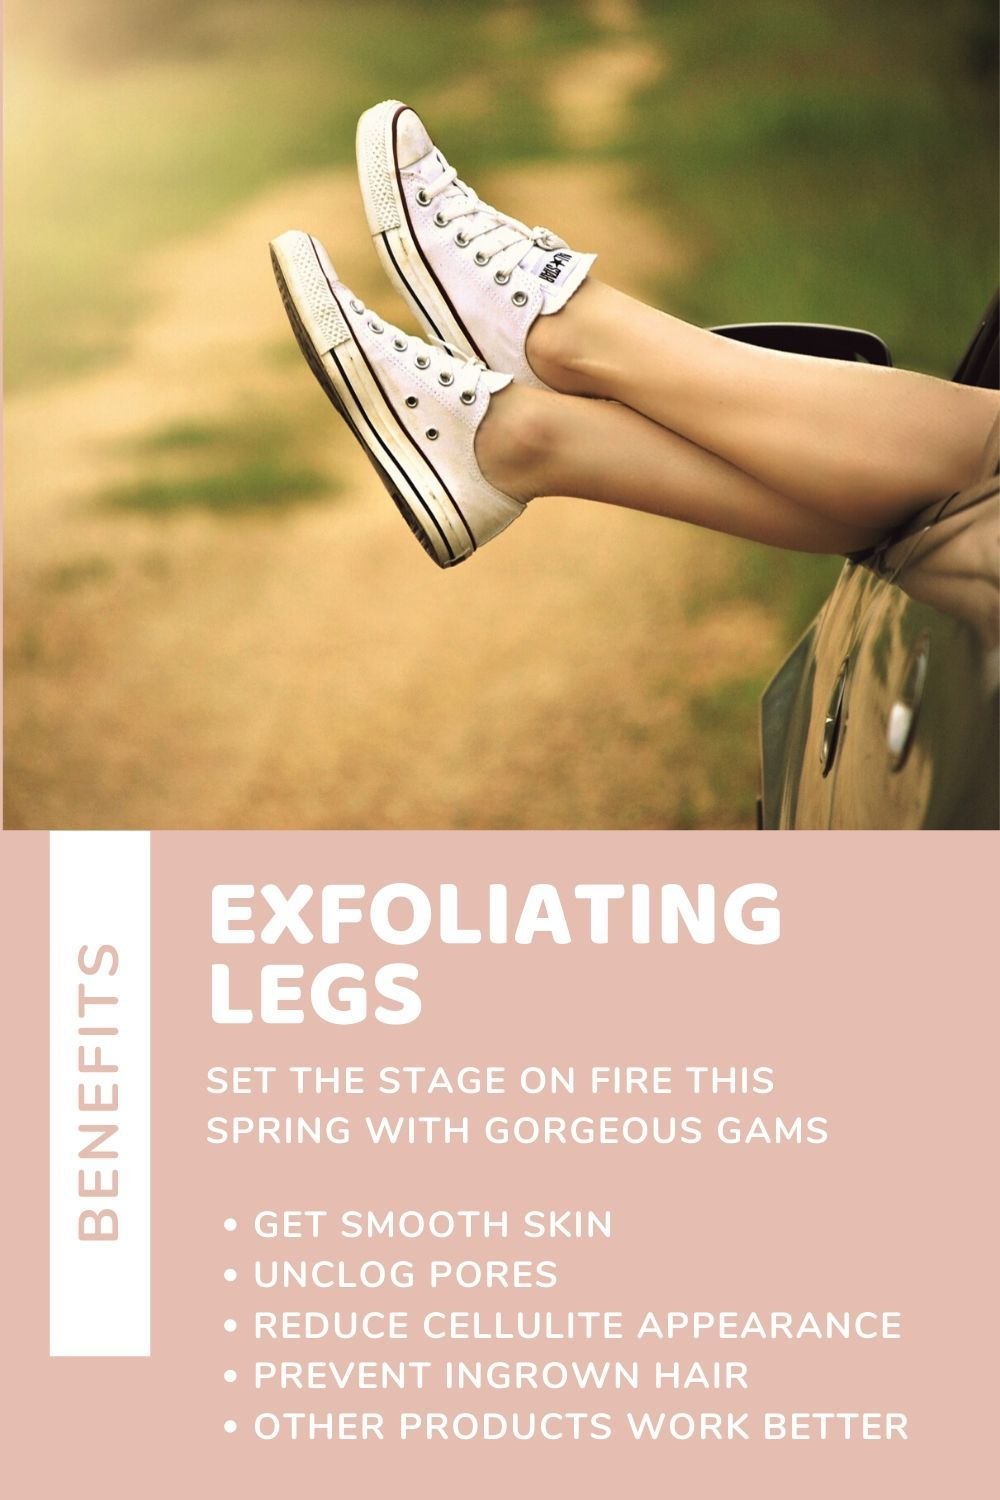 How to exfoliate legs the best way in 2020 (With images